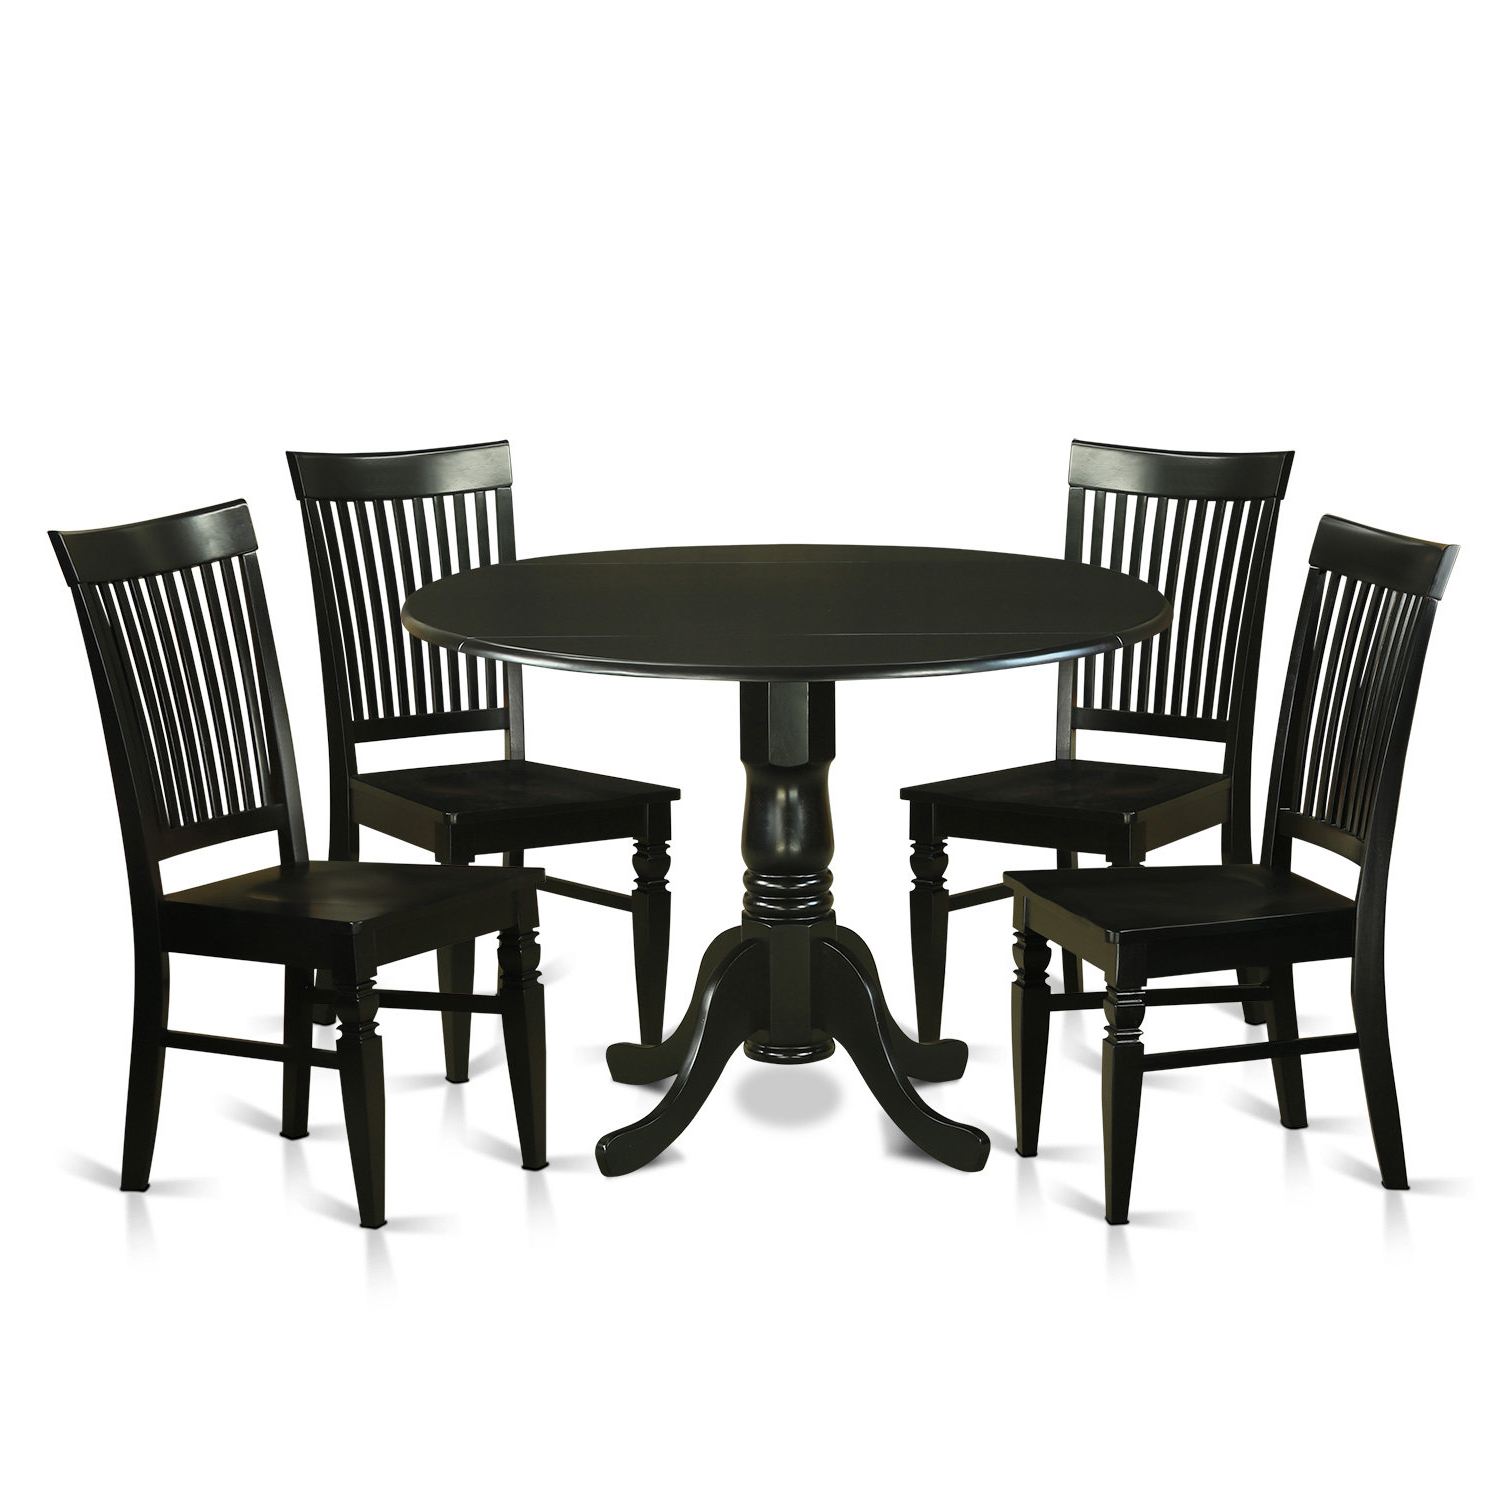 Most Recent Spruill 5 Piece Drop Leaf Solid Wood Wood Dining Set Throughout Pattonsburg 5 Piece Dining Sets (View 9 of 20)